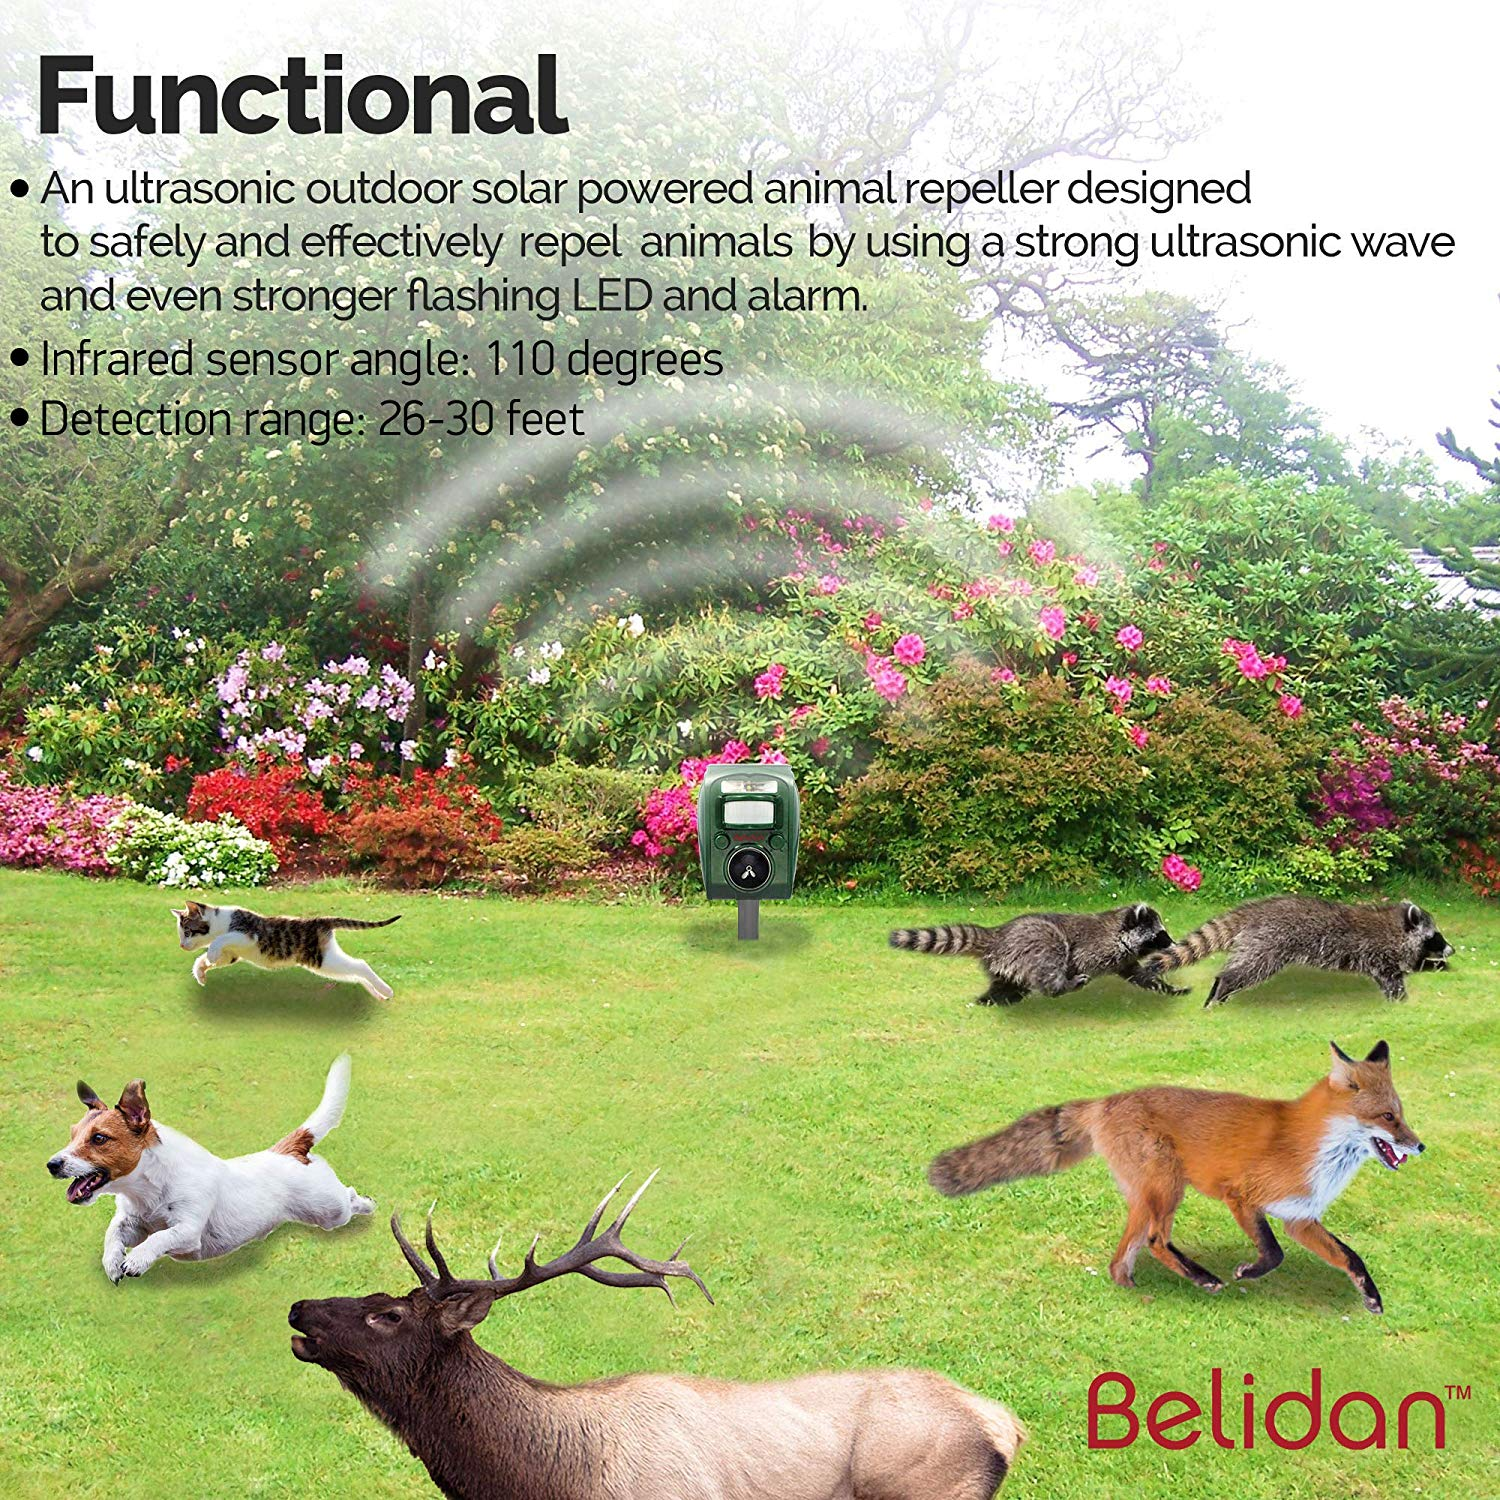 Belidan Animal Repellent Ultrasonic Outdoor Animal Repeller - Dog Rats  Raccoon Repellent Skunk Repellent Mice Cat Repellent - Animal Deterrent  Device